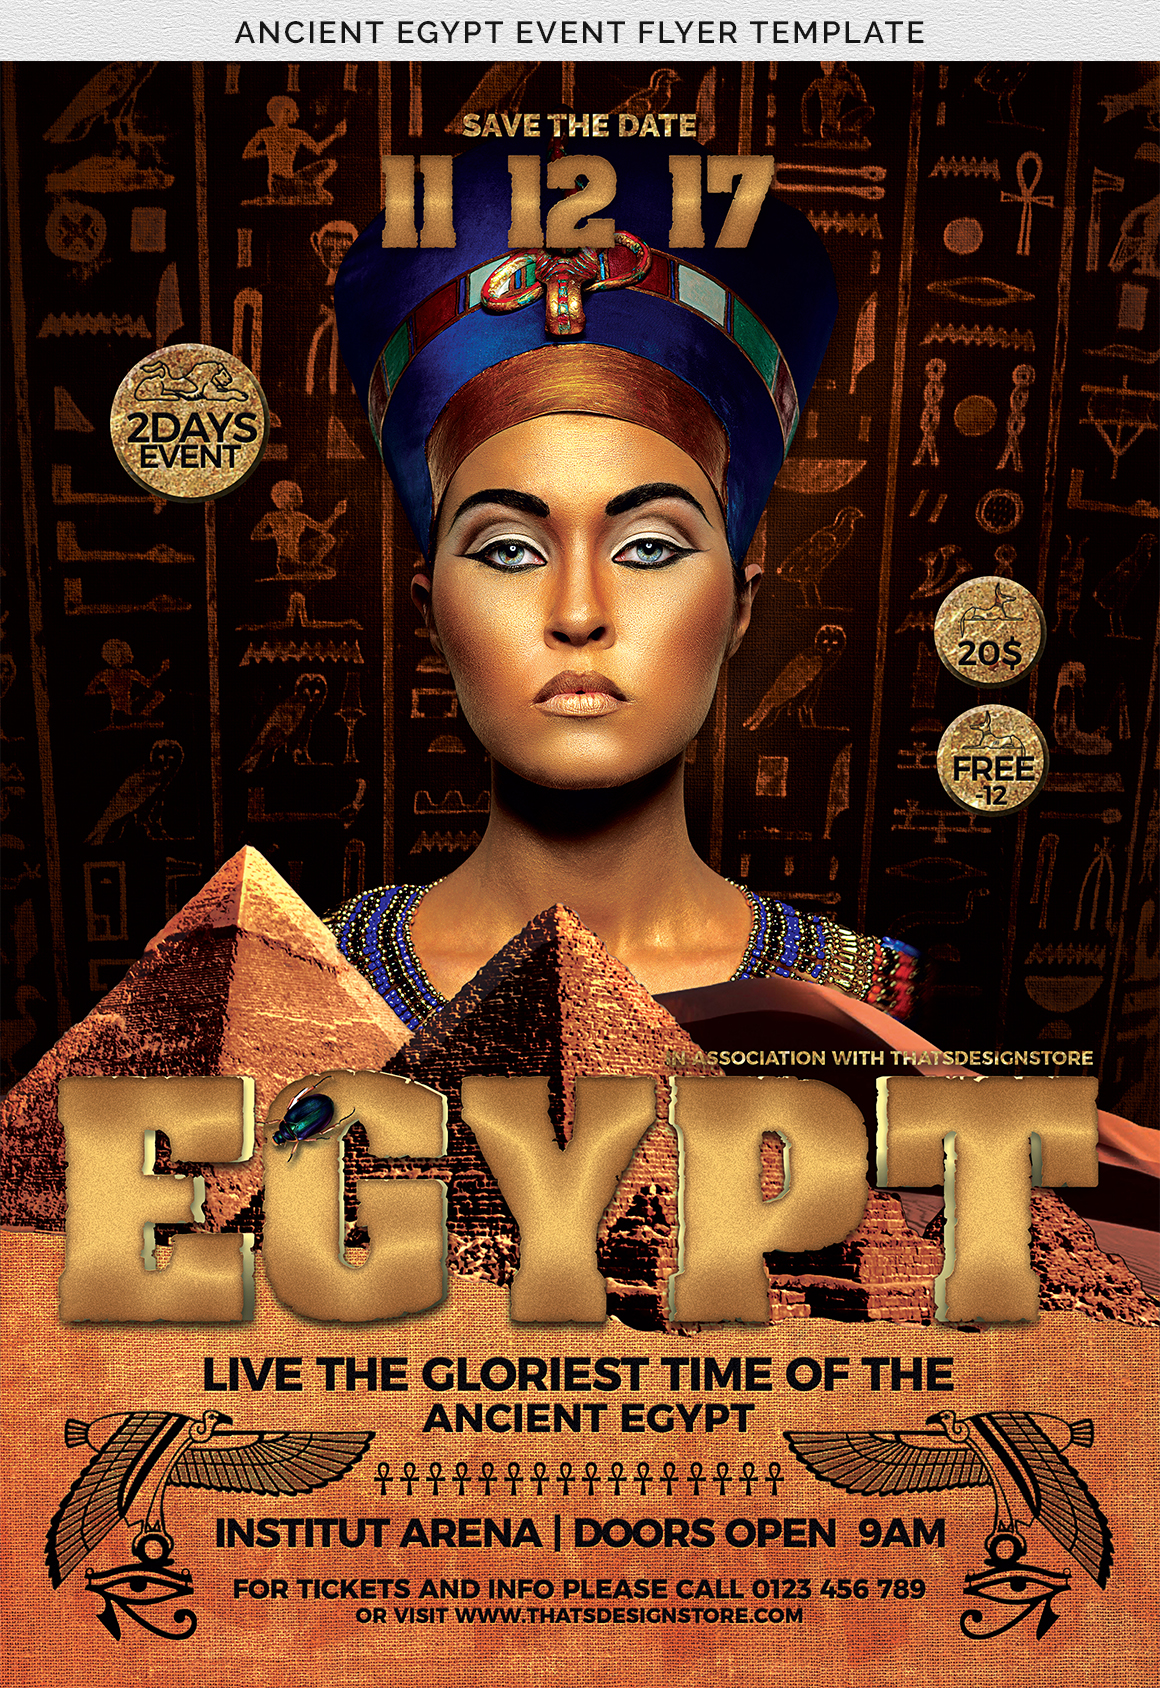 Ancient Egypt Event Flyer Template example image 8